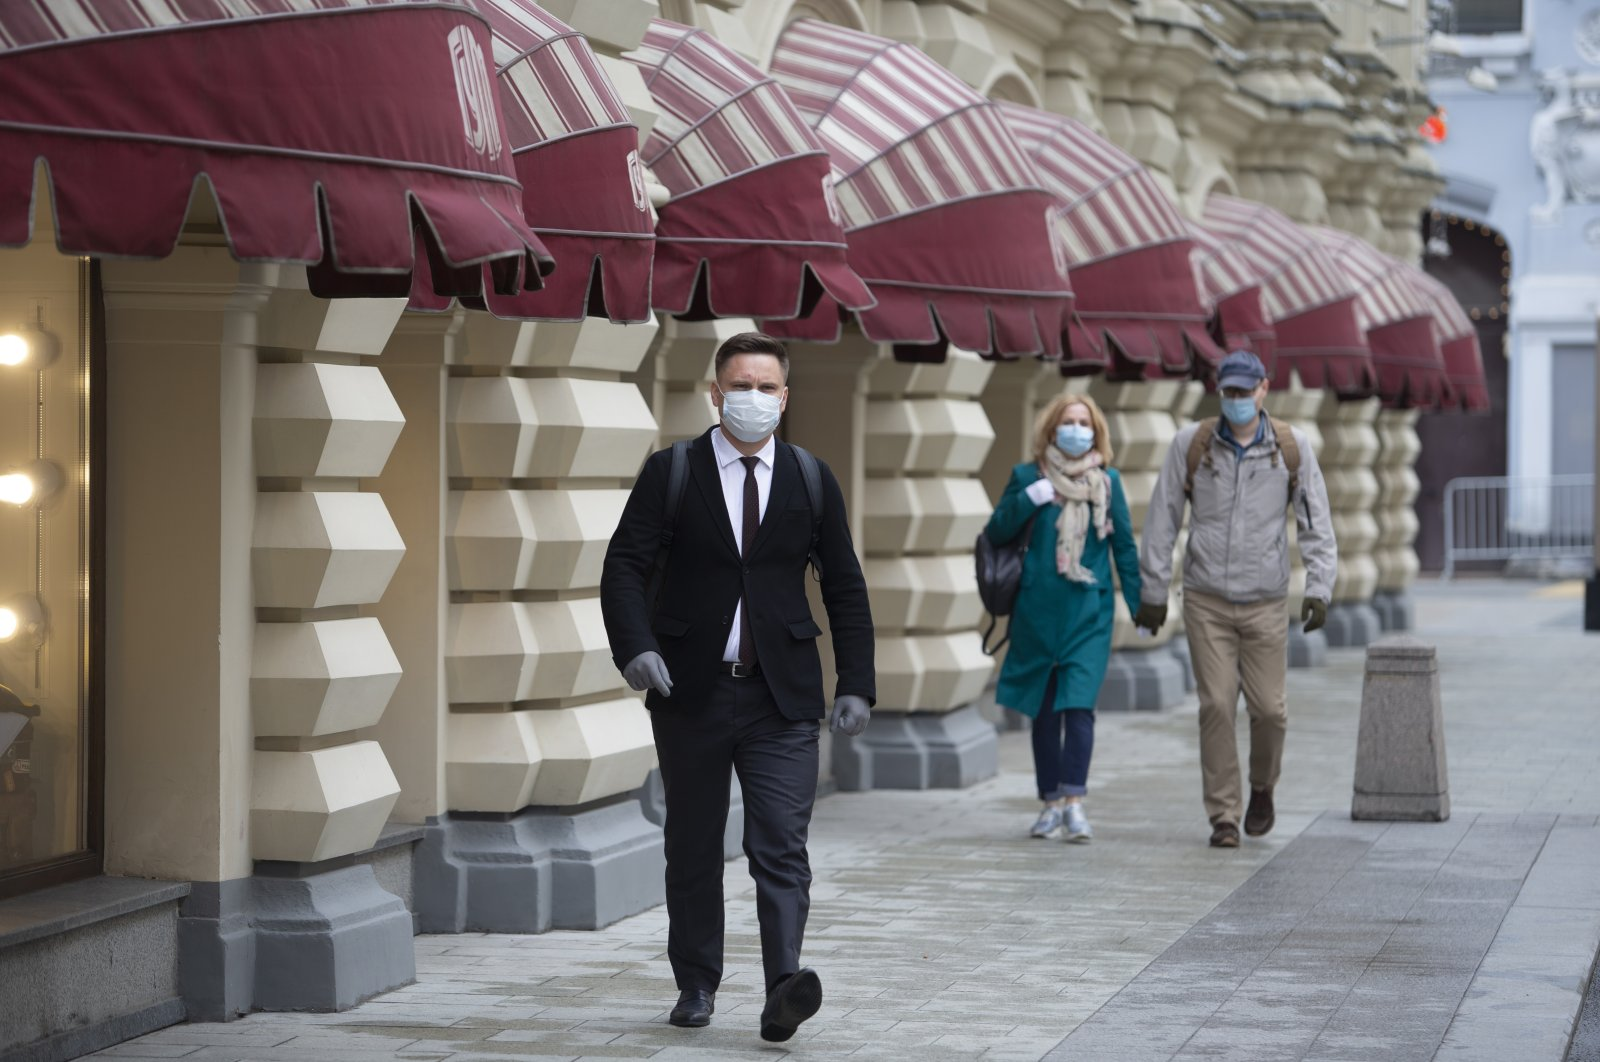 People wearing face masks and gloves walk to the entrance of GUM, also known as the State Department Store, after it reopened in Moscow, Russia, June 1, 2020. (AP Photo)